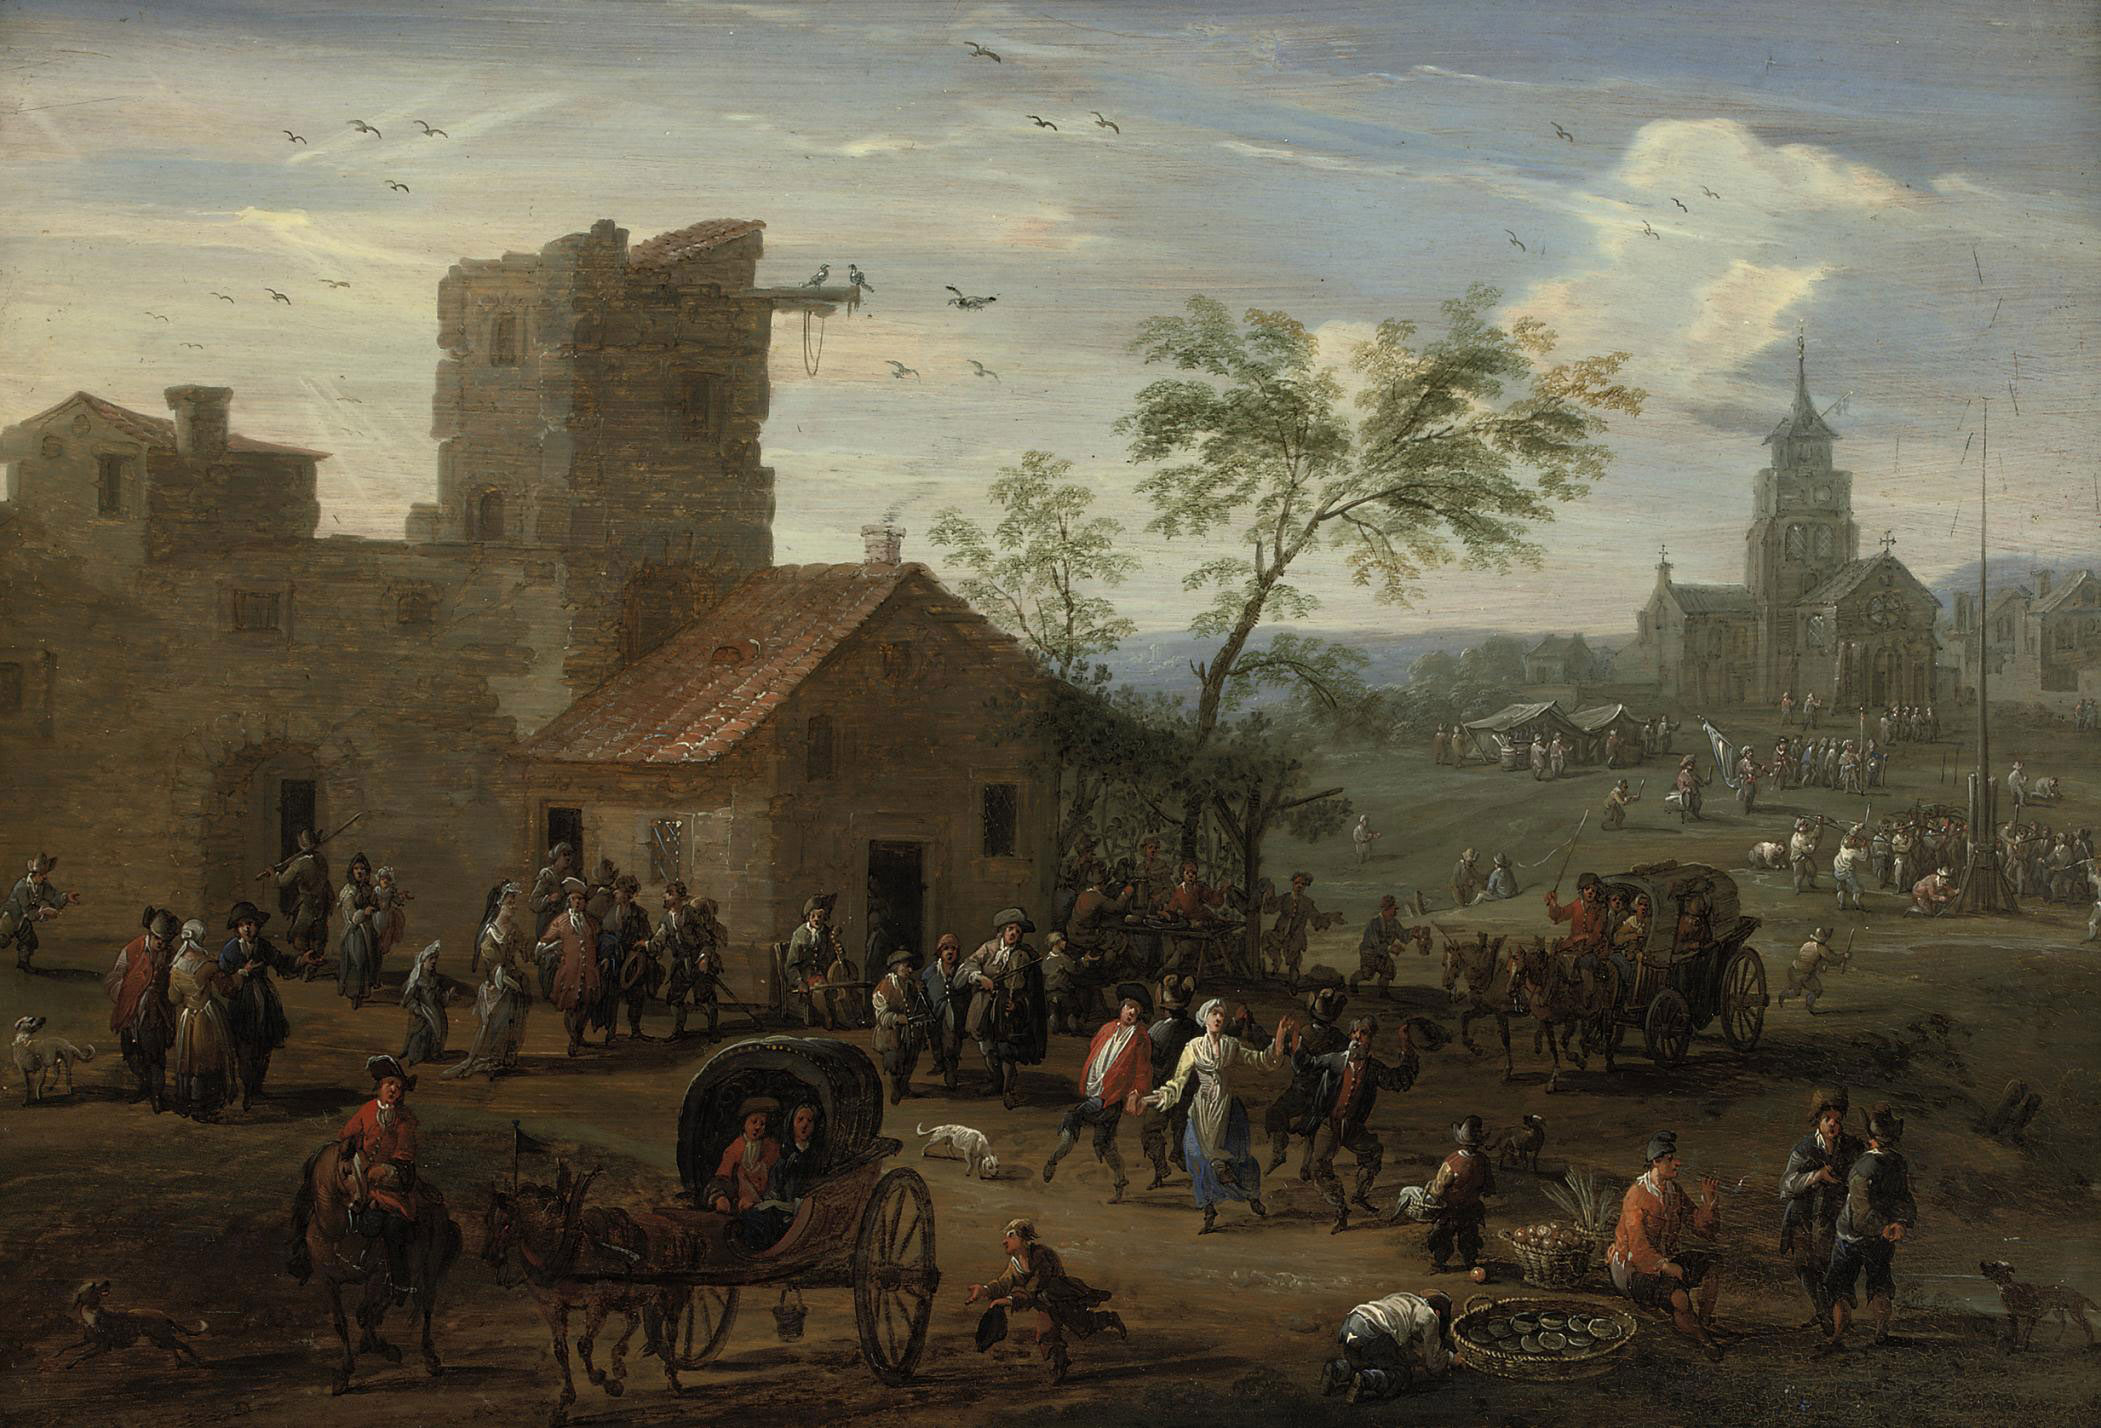 A village 'kermesse' with figures making merry, archers playing a game beyond